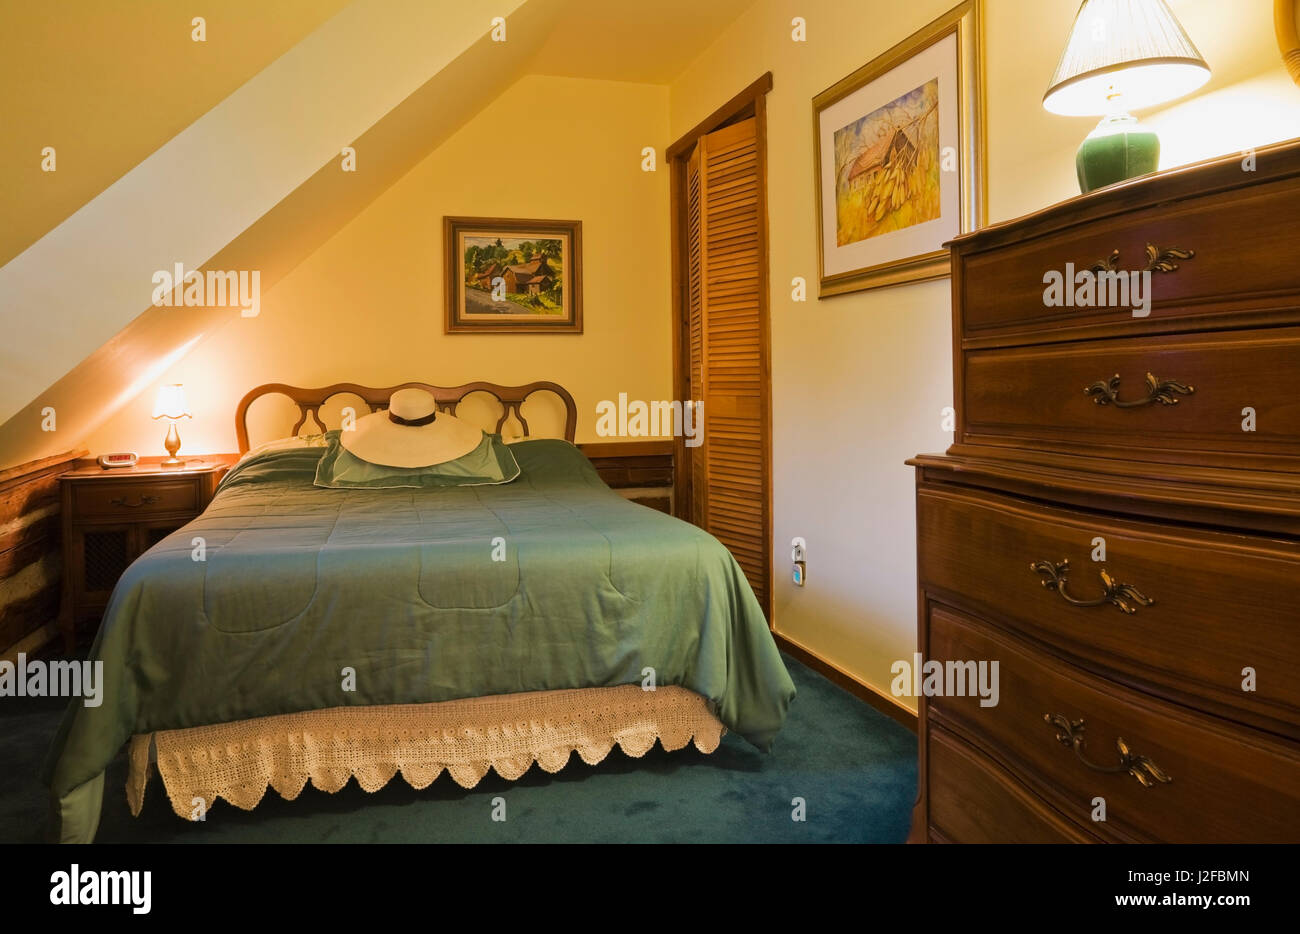 Queen size bed and old wooden dresser in guest bedroom on the upstairs floor inside a 1976 reconstructed cottage style log home Stock Photo